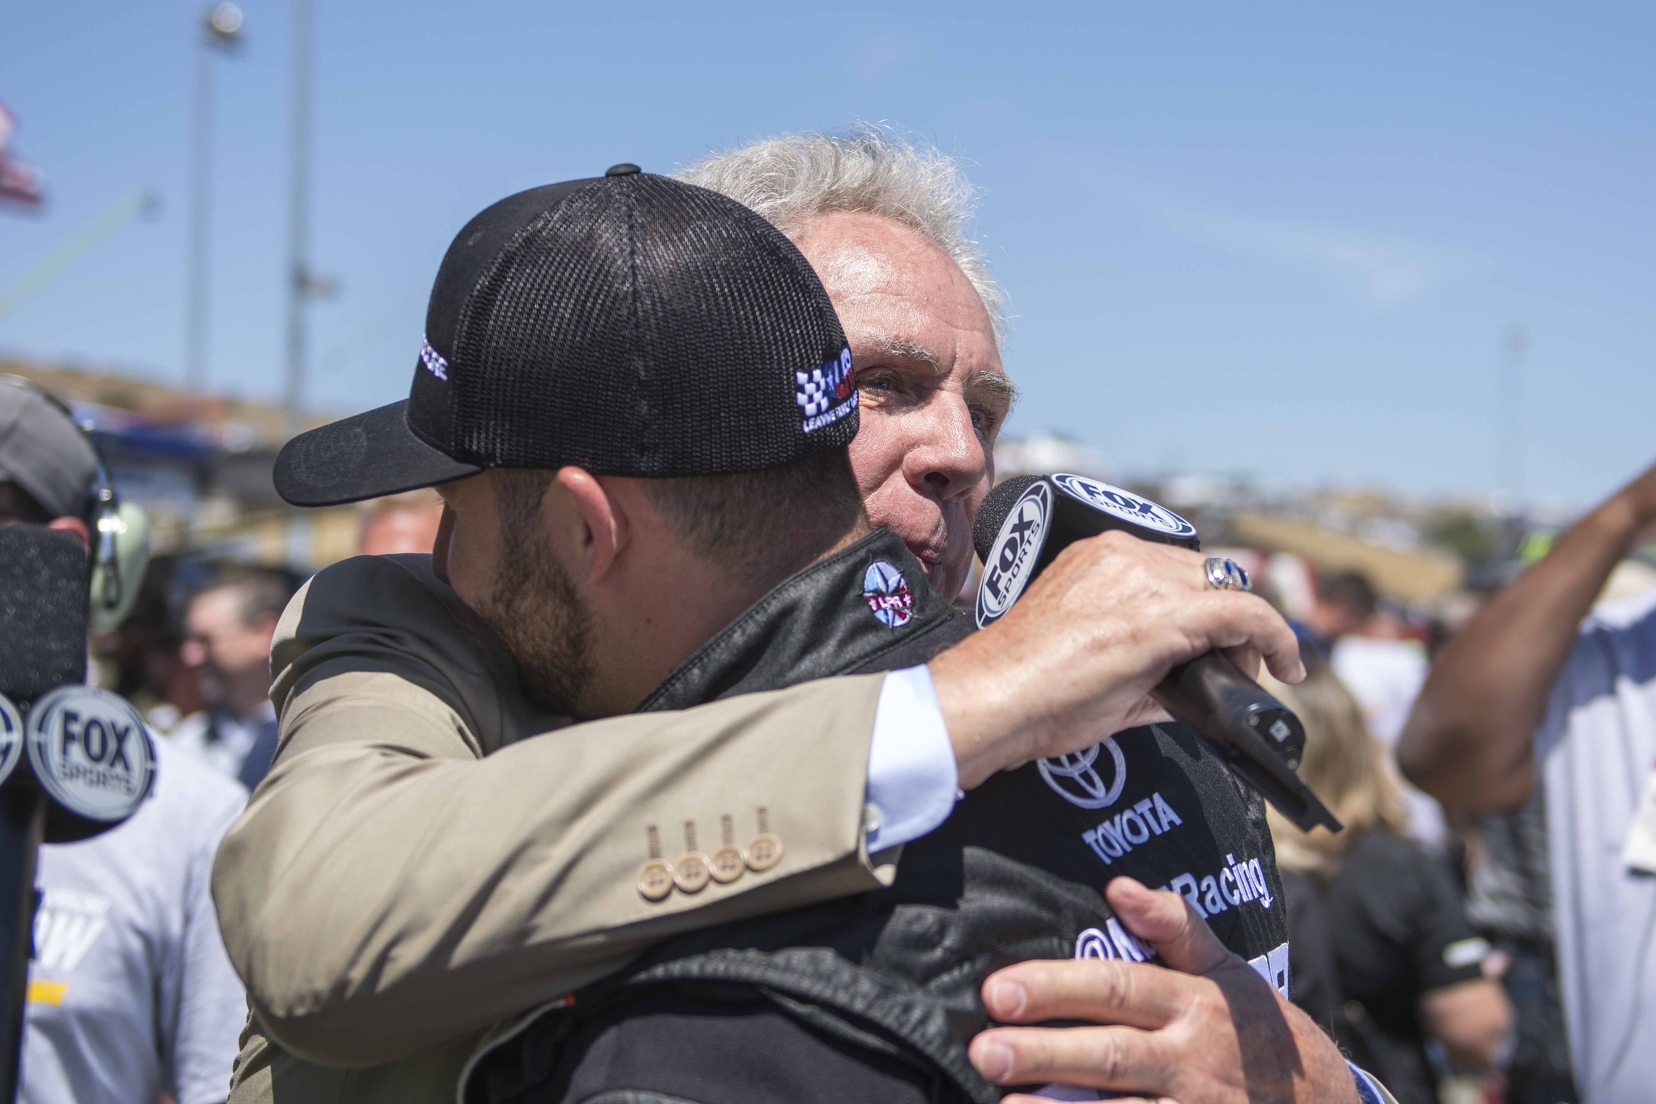 Darrell Waltrip and Matt DiBenedetto share a hug during pre-race ceremonies for Waltrip's final broadcast. Photo courtesy of Patrick Sue-Chan for Speedway Media.